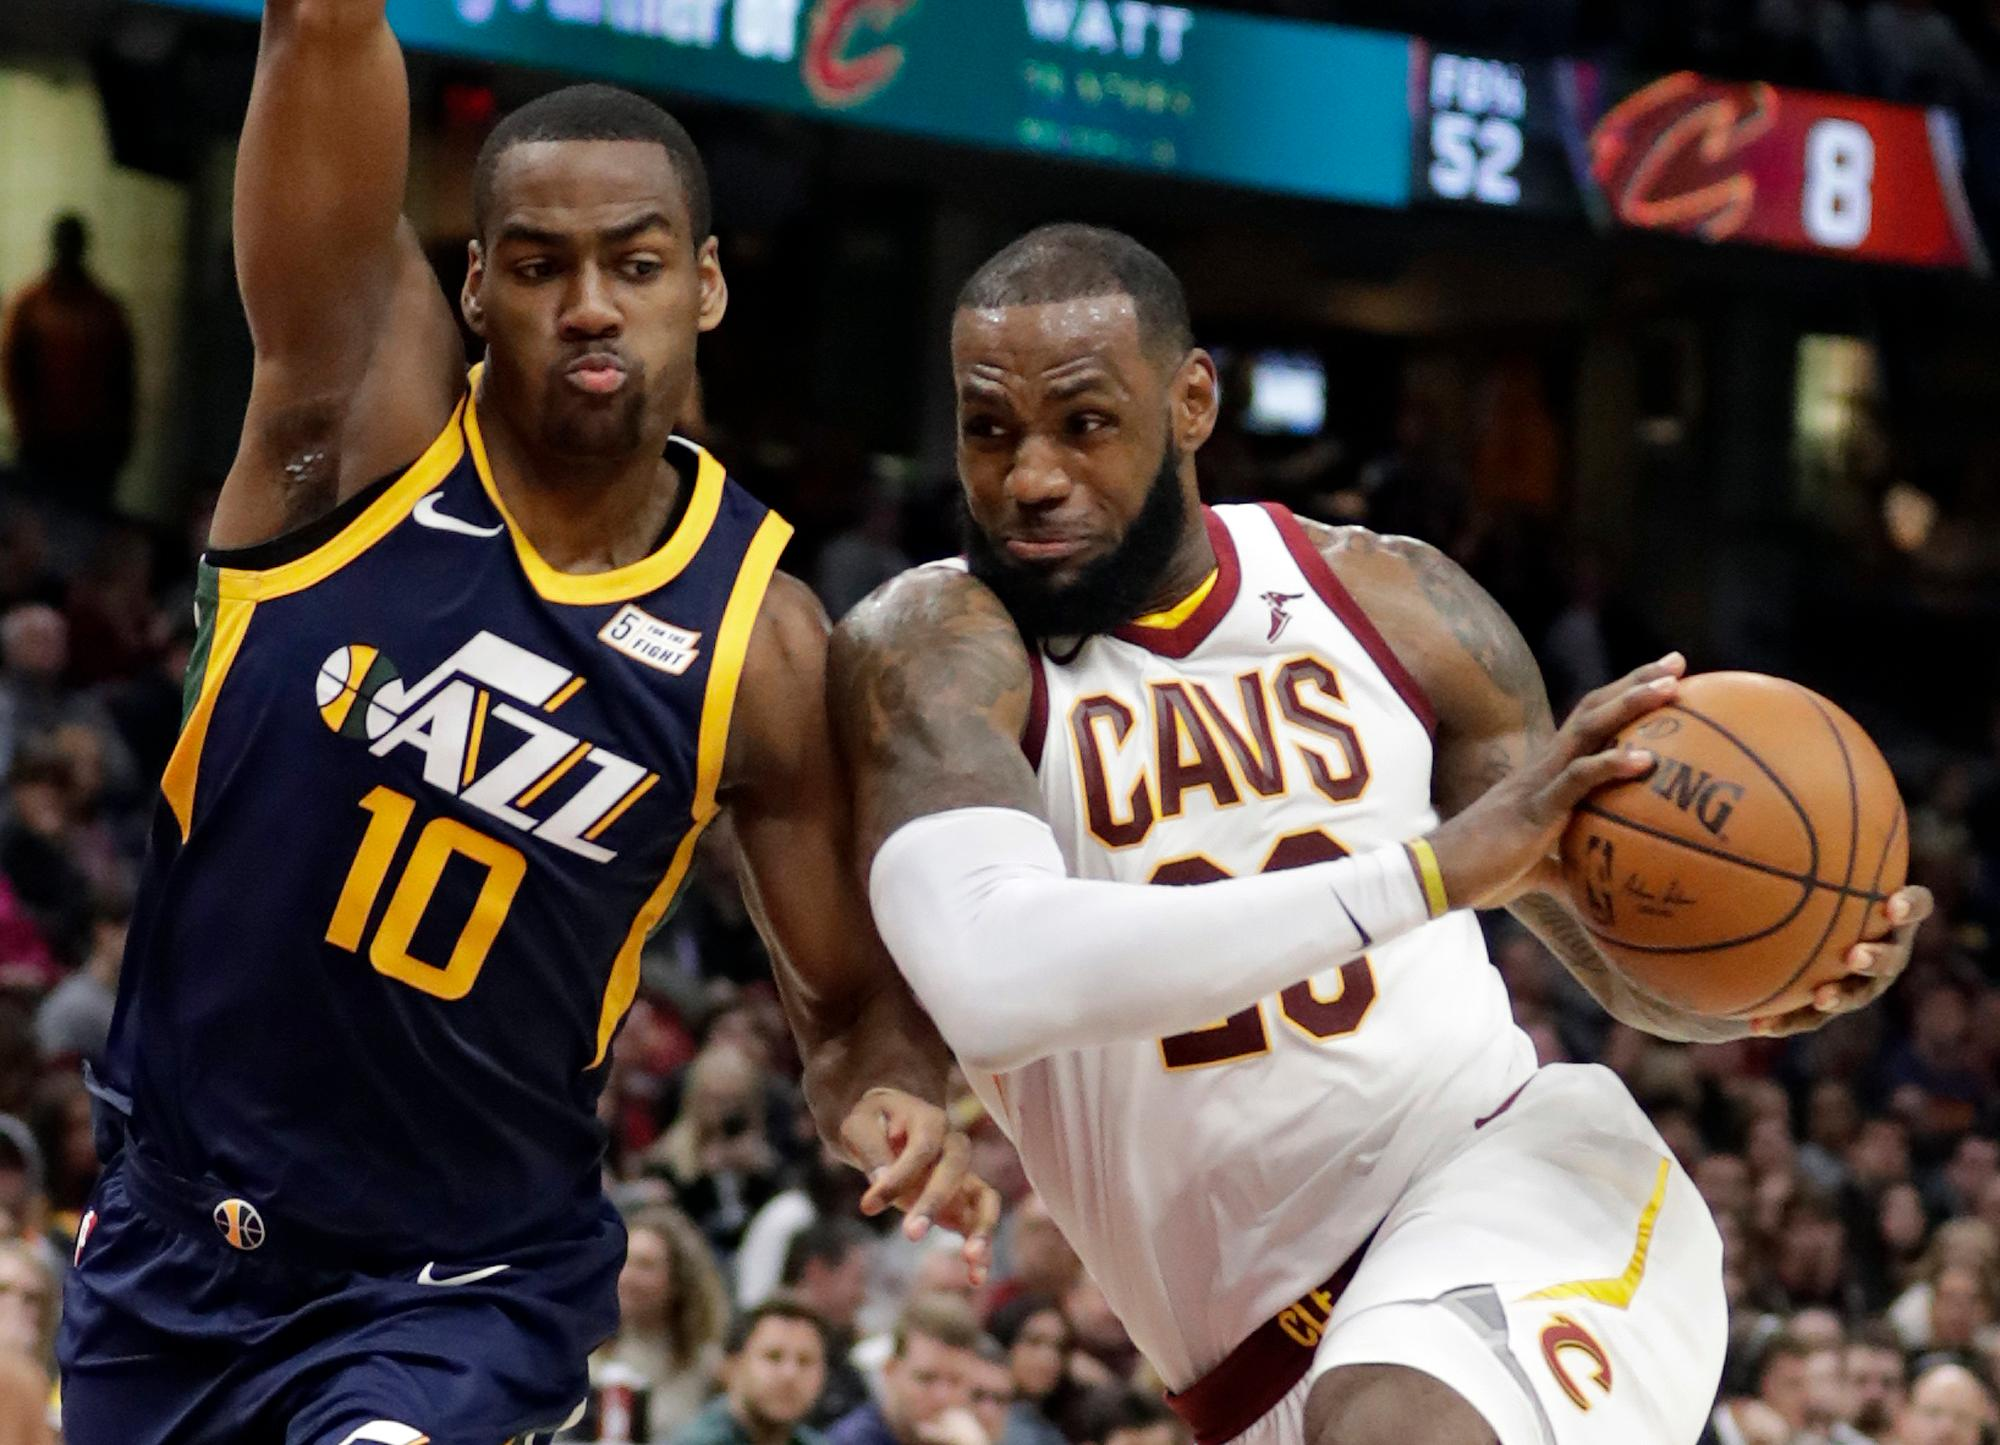 Cleveland Cavaliers' LeBron James, right, drives against Utah Jazz's Alec Burks (10) in the second half of an NBA basketball game, Saturday, Dec. 16, 2017, in Cleveland.(AP Photo/Tony Dejak)